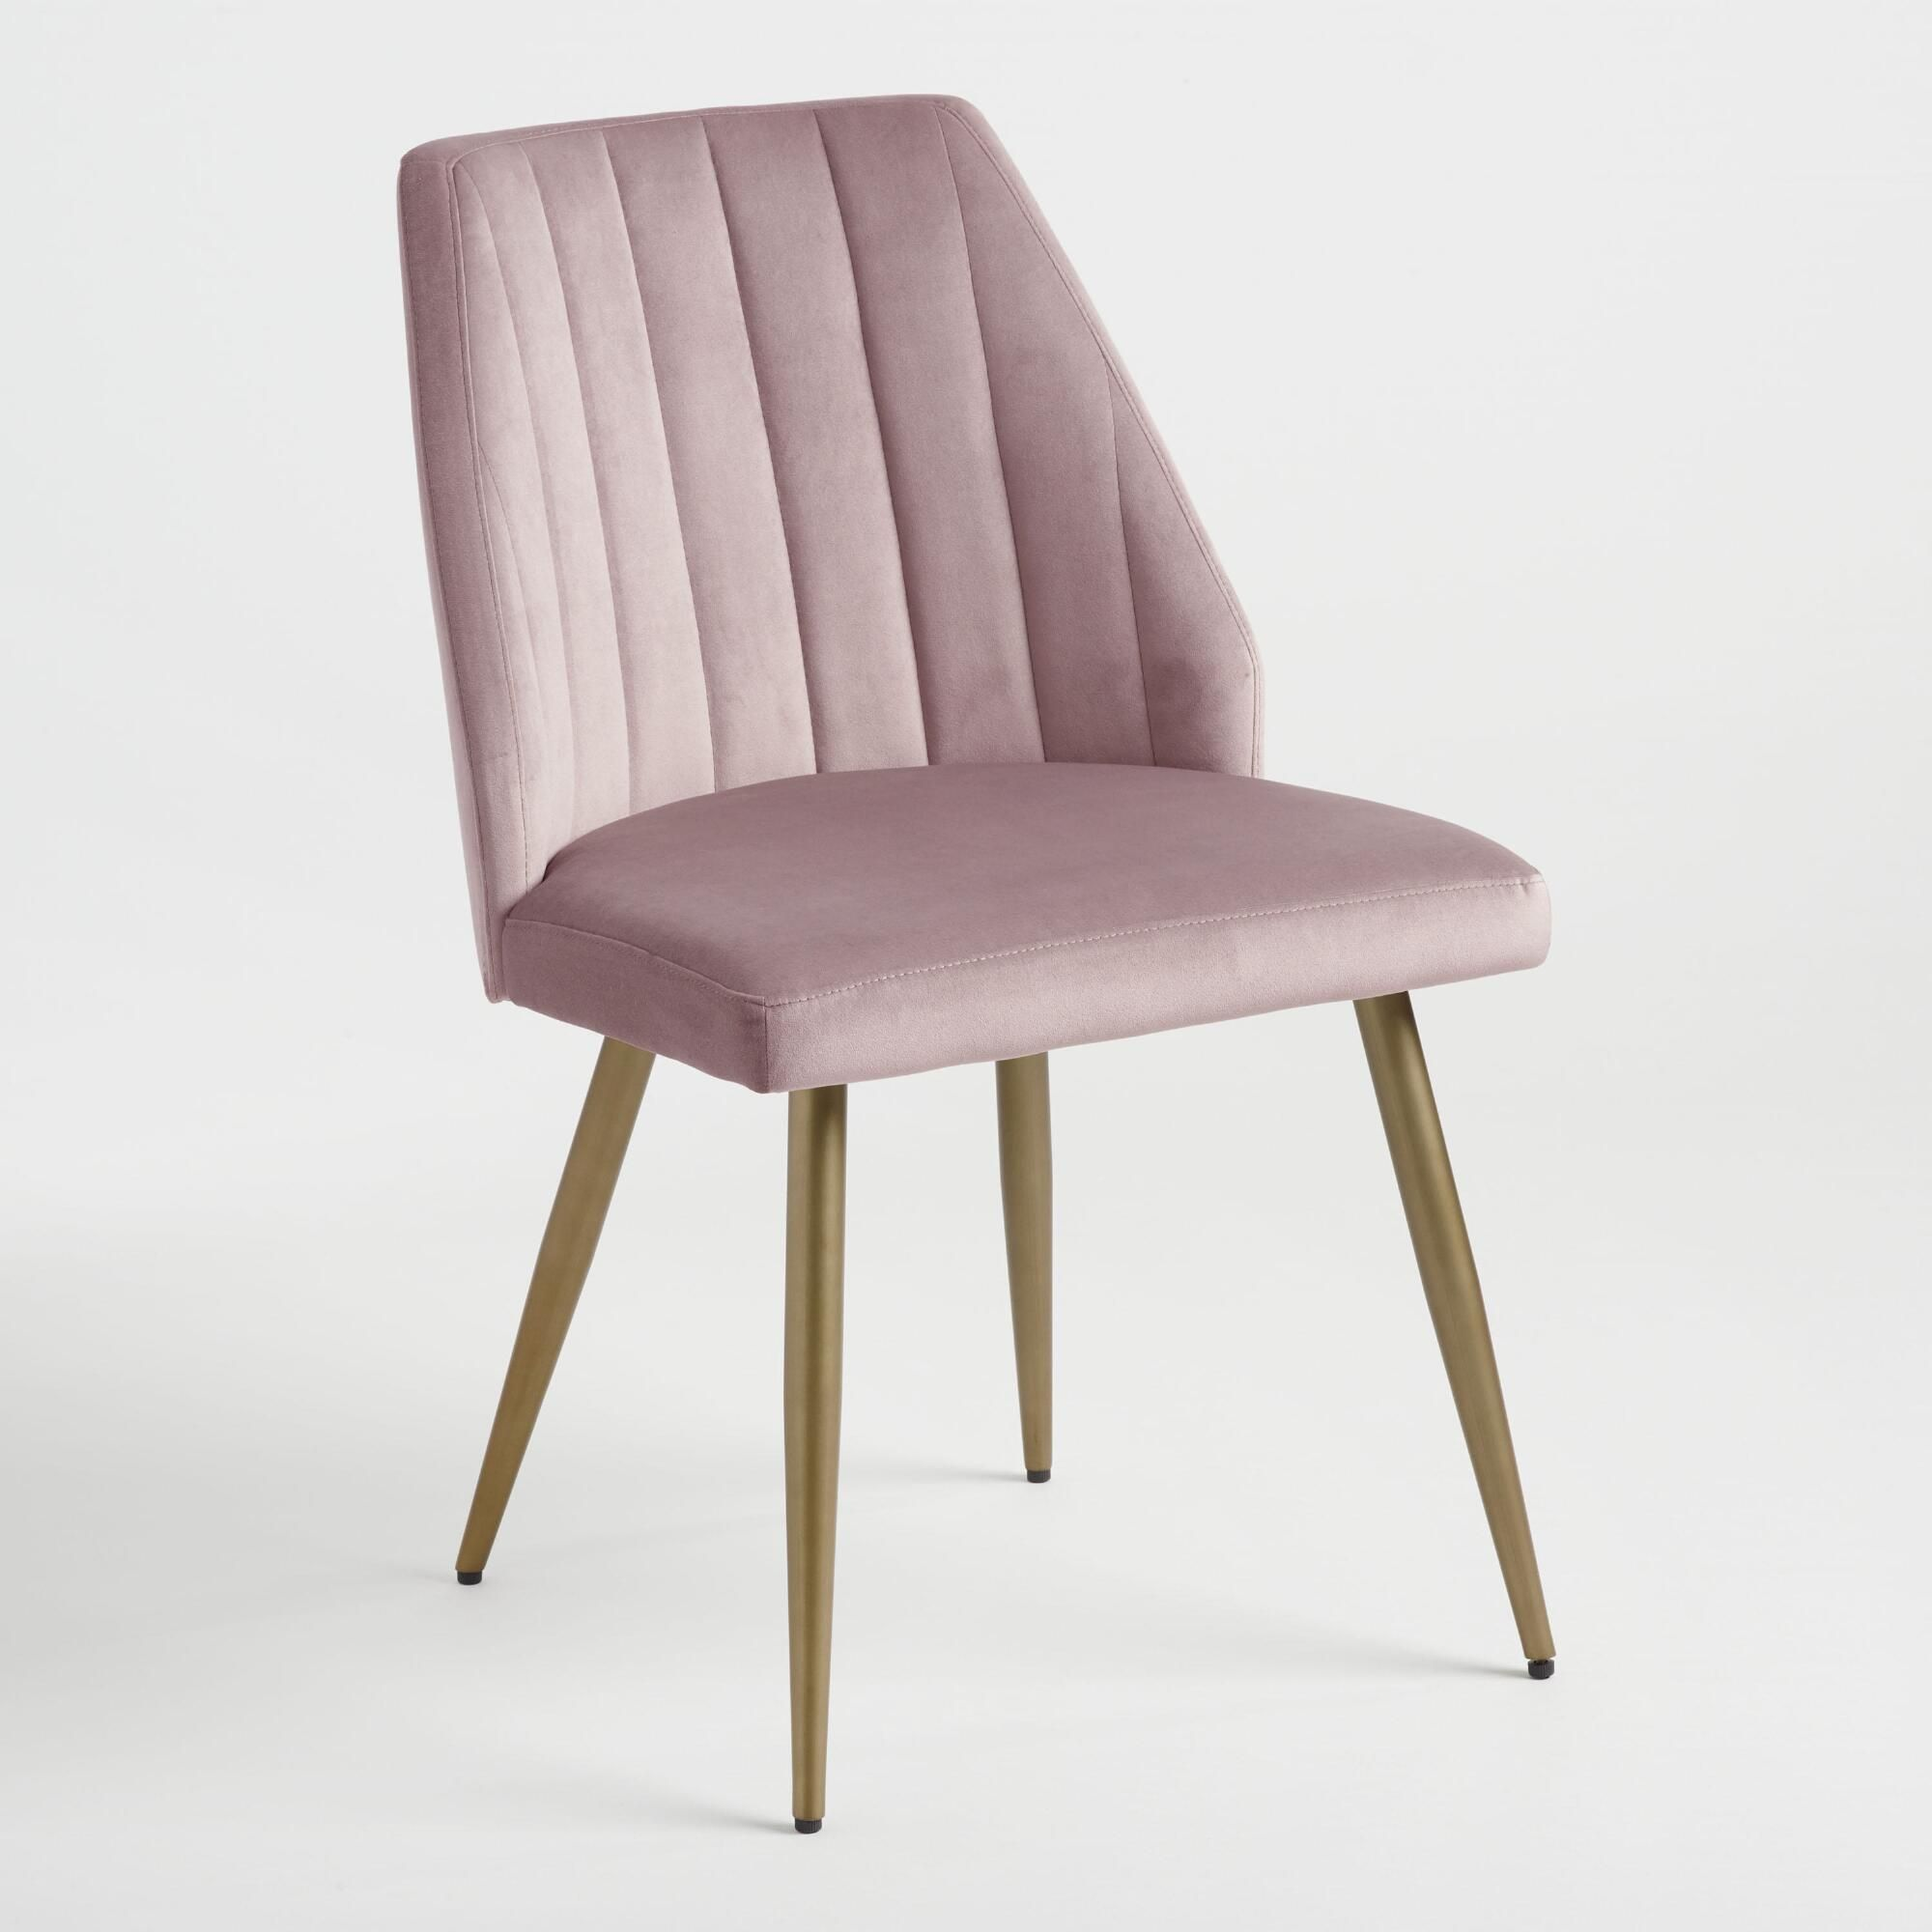 Mauve Pink Leilani Dining Chairs Set Of 2 By World Market World Market Dining Chairs Dining Chairs Luxury Office Chairs #world #market #living #room #chairs